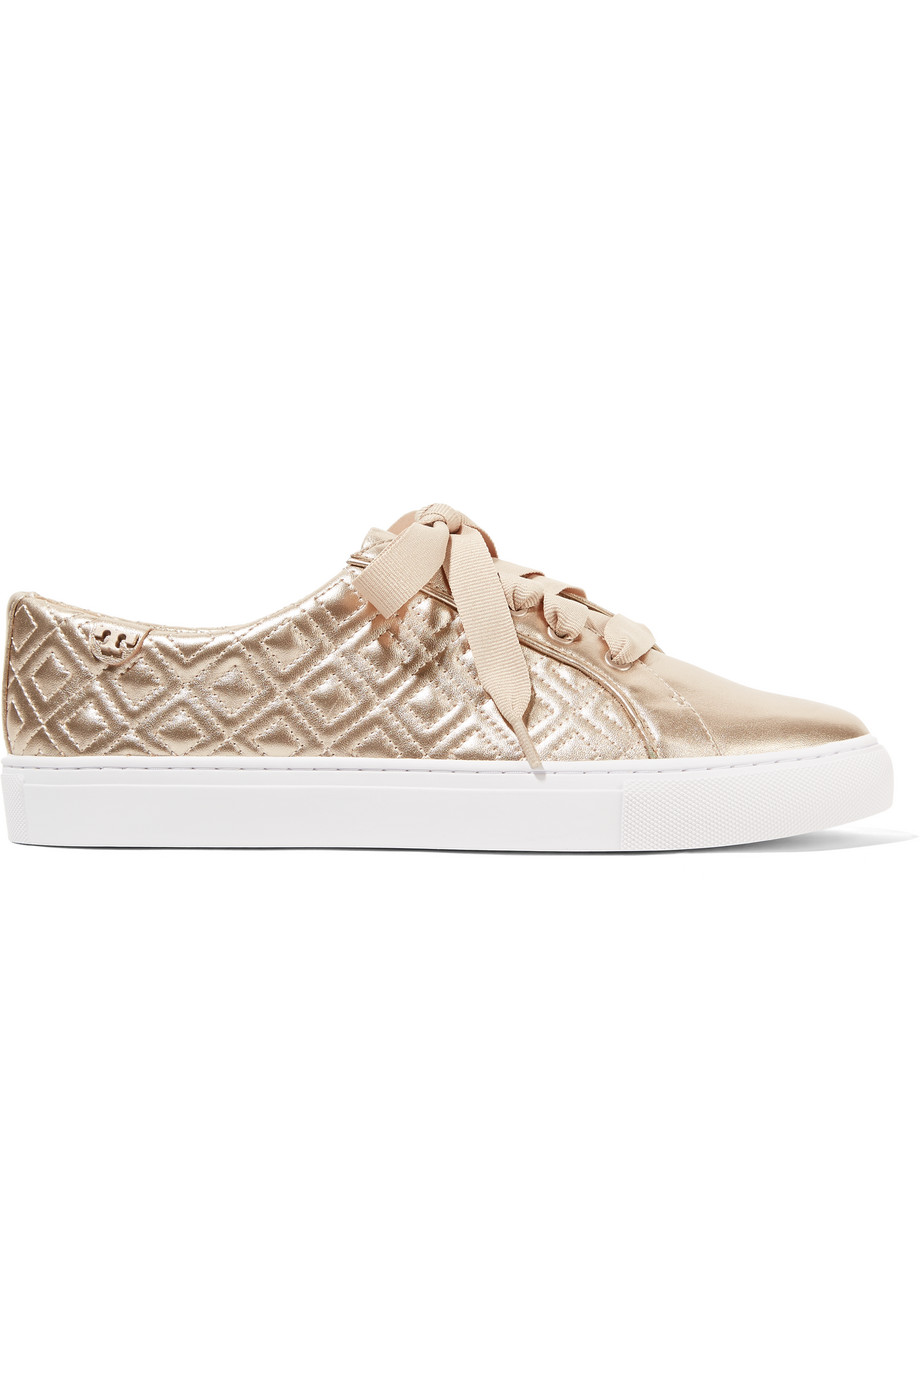 Tory Burch Marion Quilted Metallic Leather Sneakers, Women's, Size: 8.5